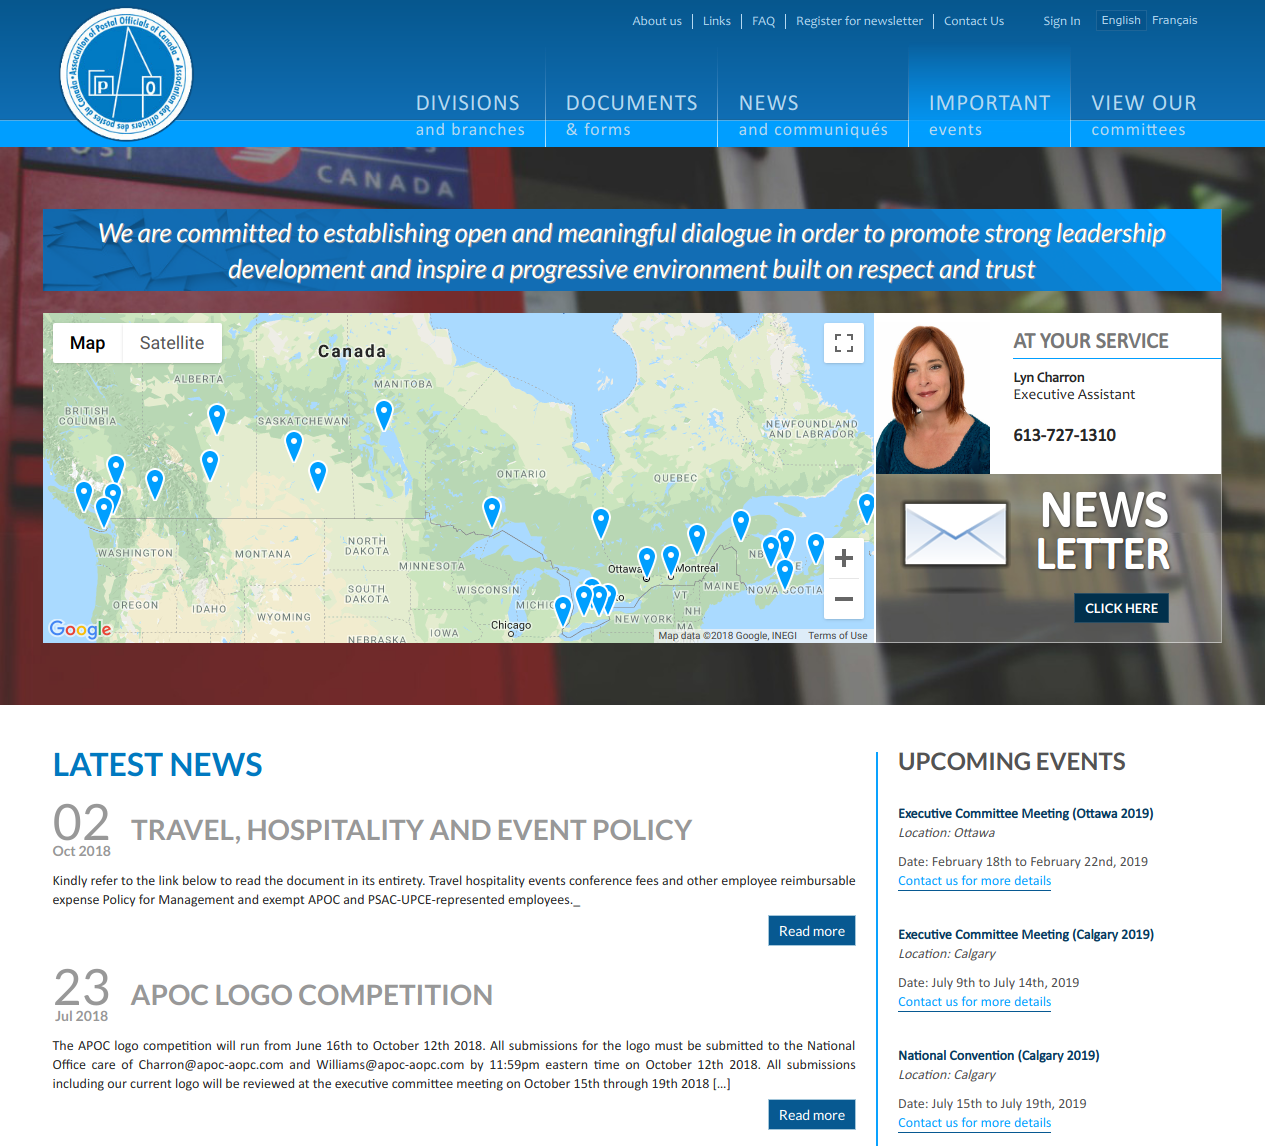 Association of Postal Officials of Canada Homepage (https://www.apoc-aopc.com)